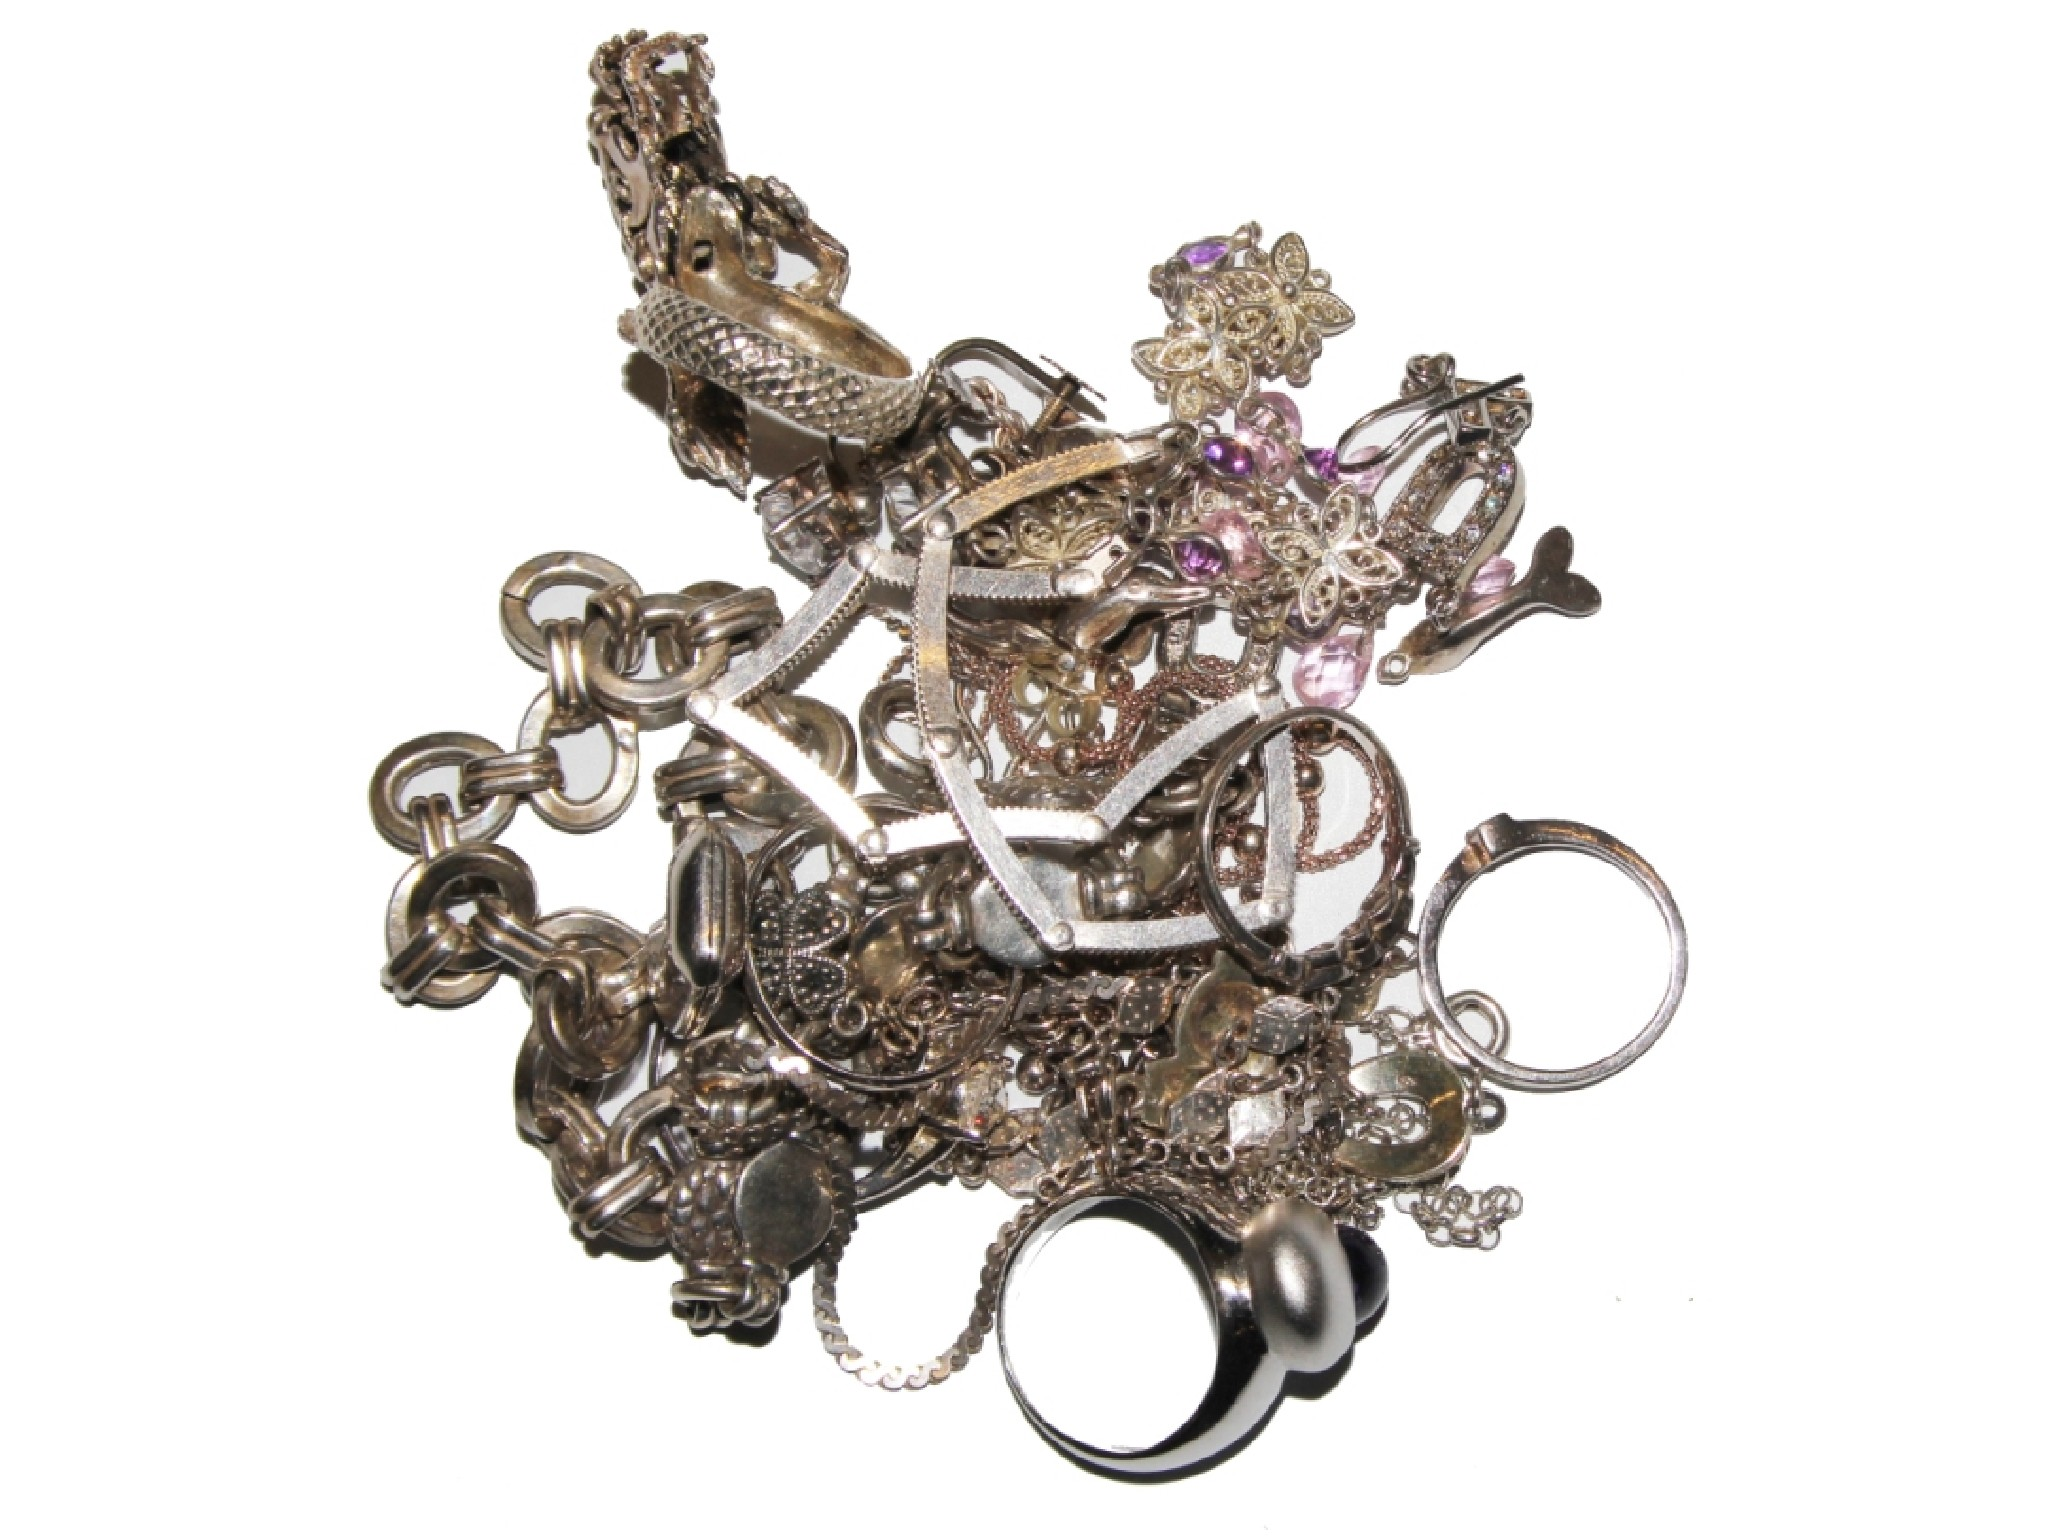 A collection of mixed fashion jewellery, some silver